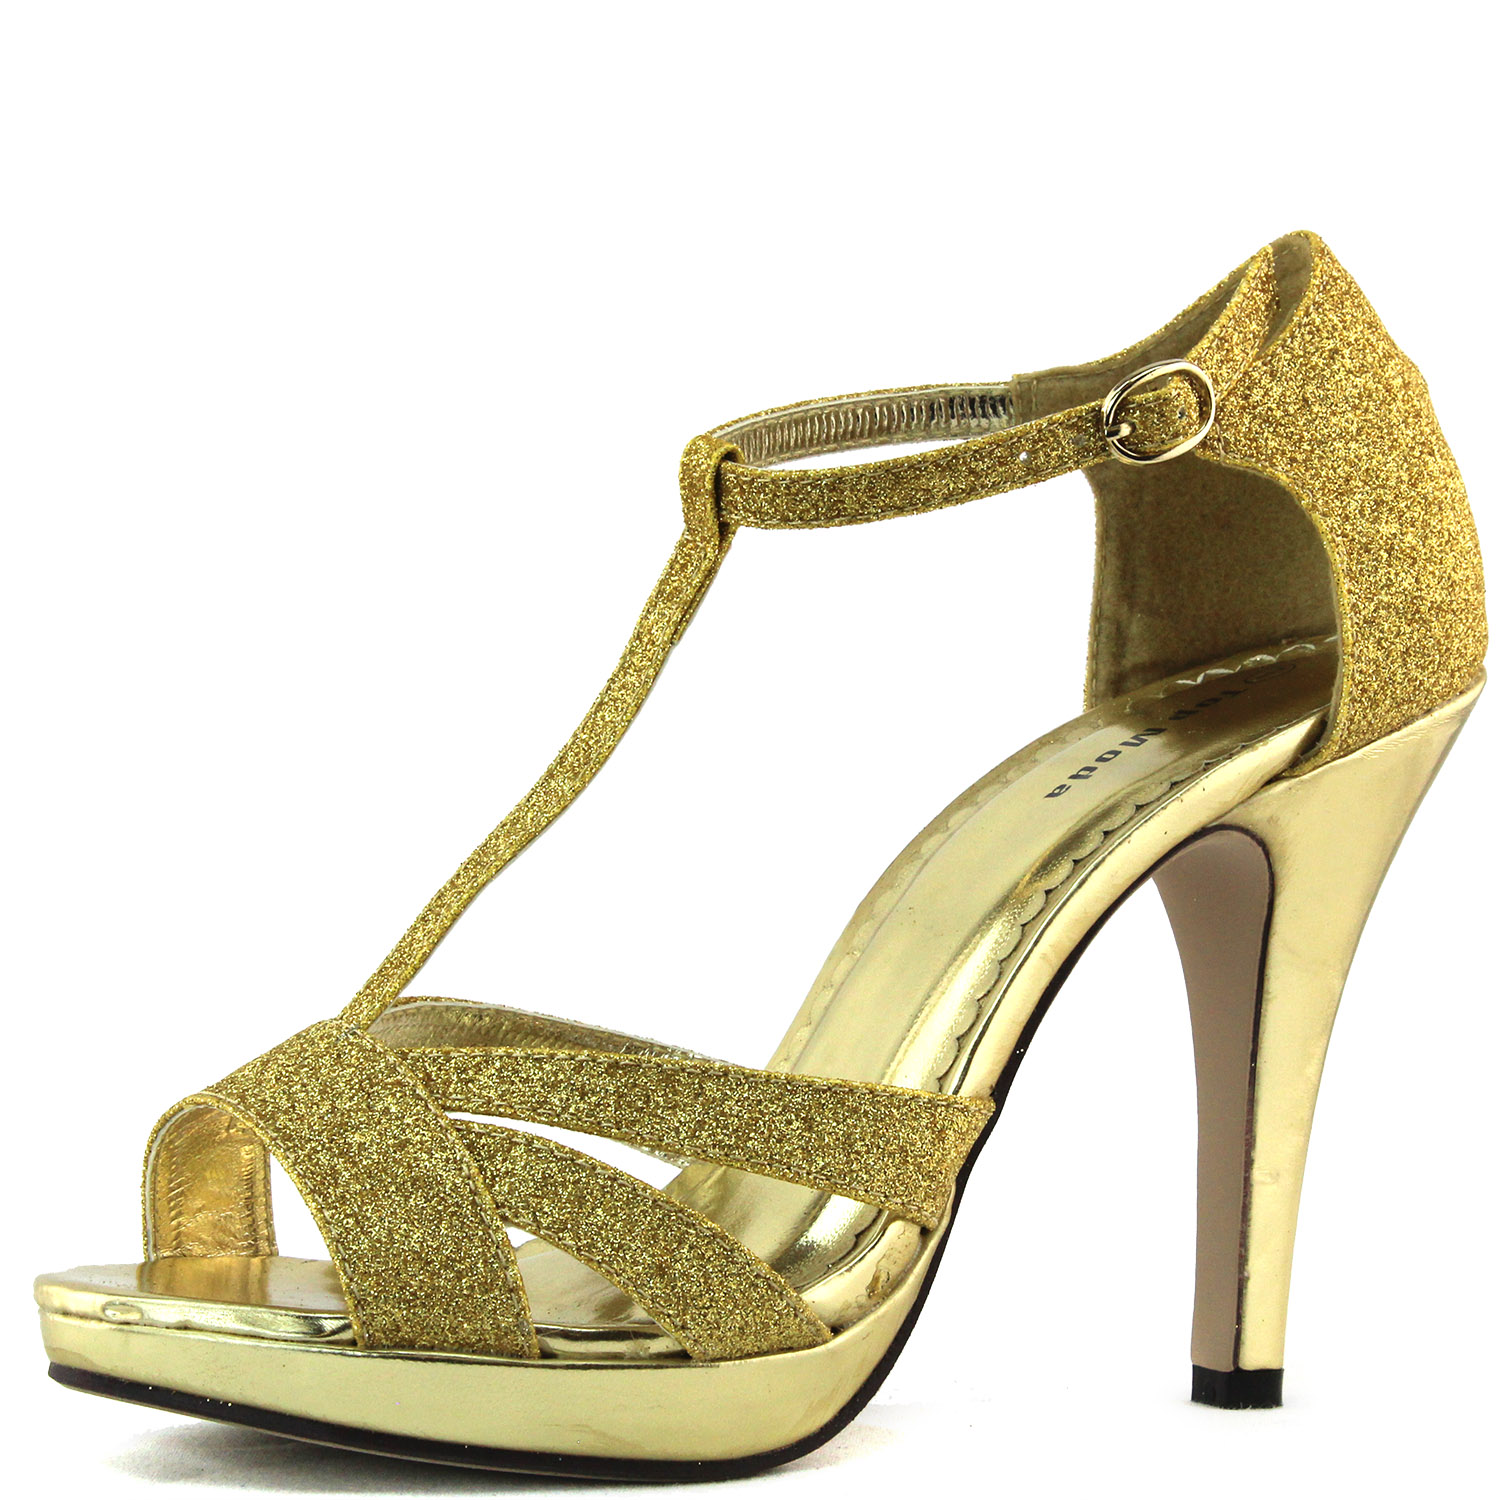 gold sandals high heel glitter peep toe ankle strappy platform sexy womens shoes ebay. Black Bedroom Furniture Sets. Home Design Ideas